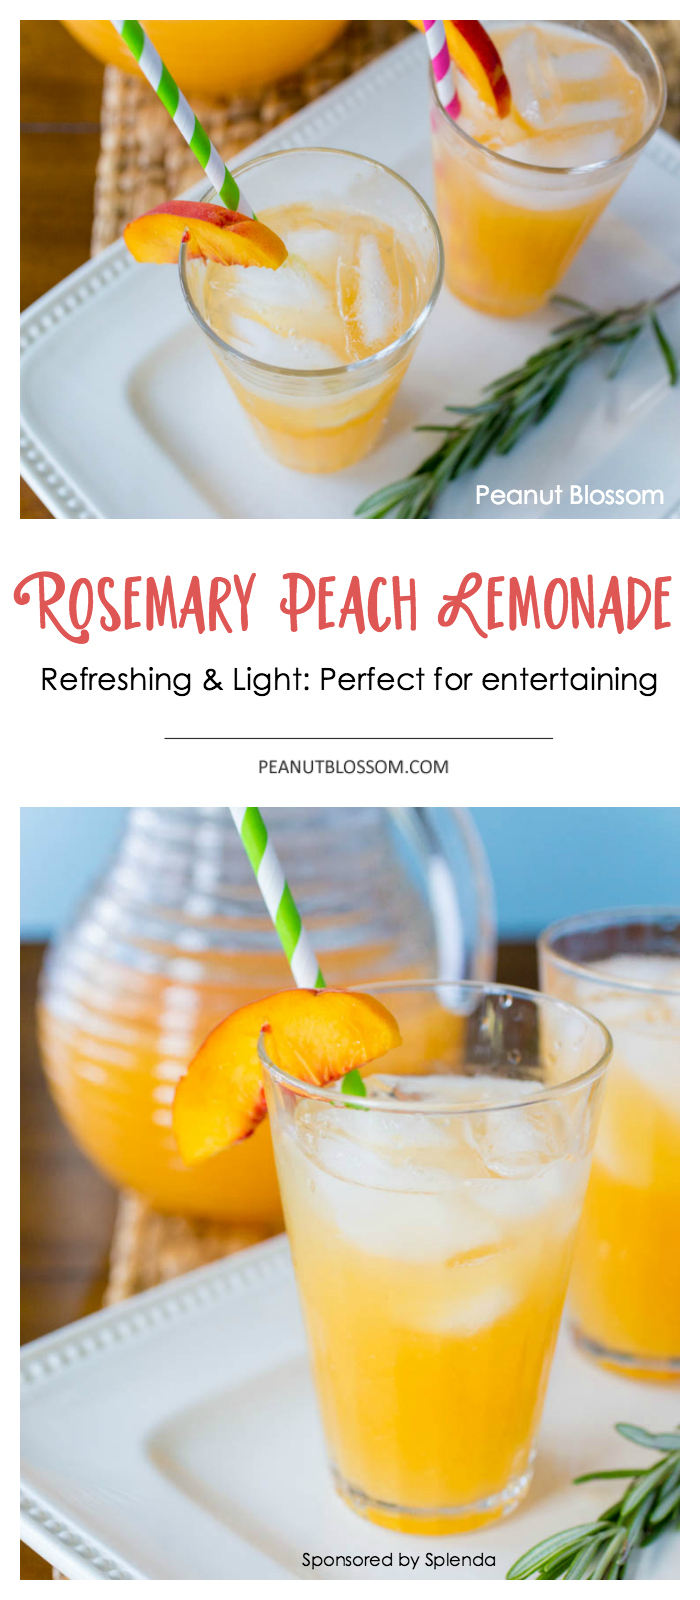 This refreshing and easy rosemary infused peach lemonade recipe is perfect for summer entertaining. Your guests will love it as a cool drink or the base of a delicious cocktail!